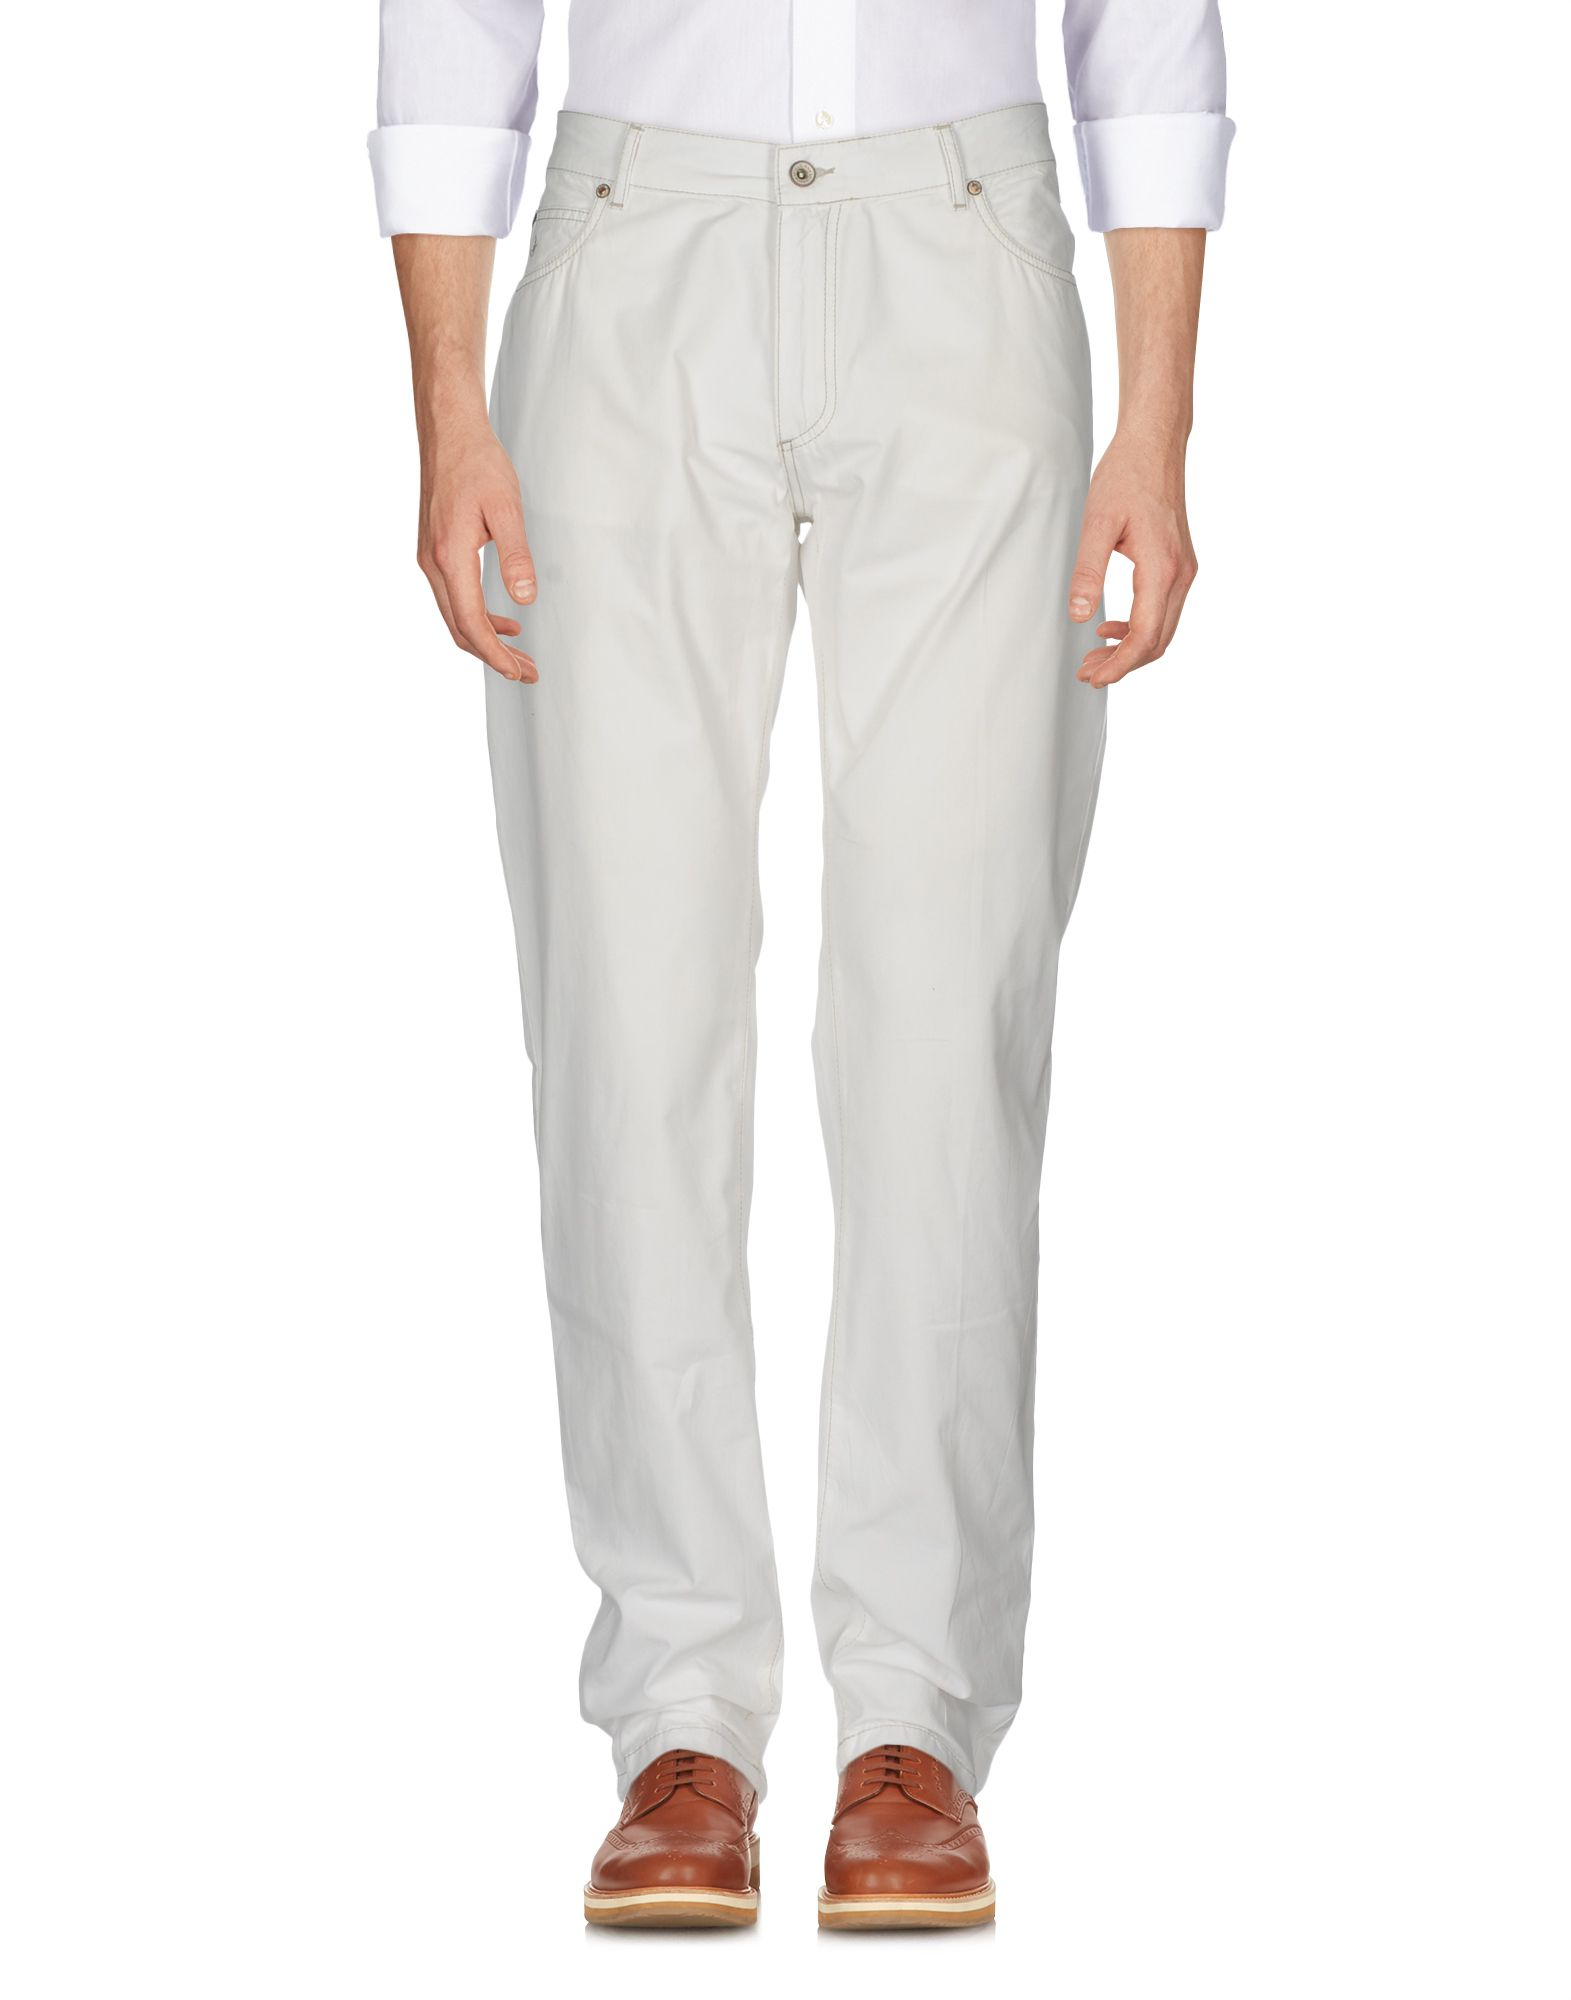 'BROOKSFIELD Casual pants